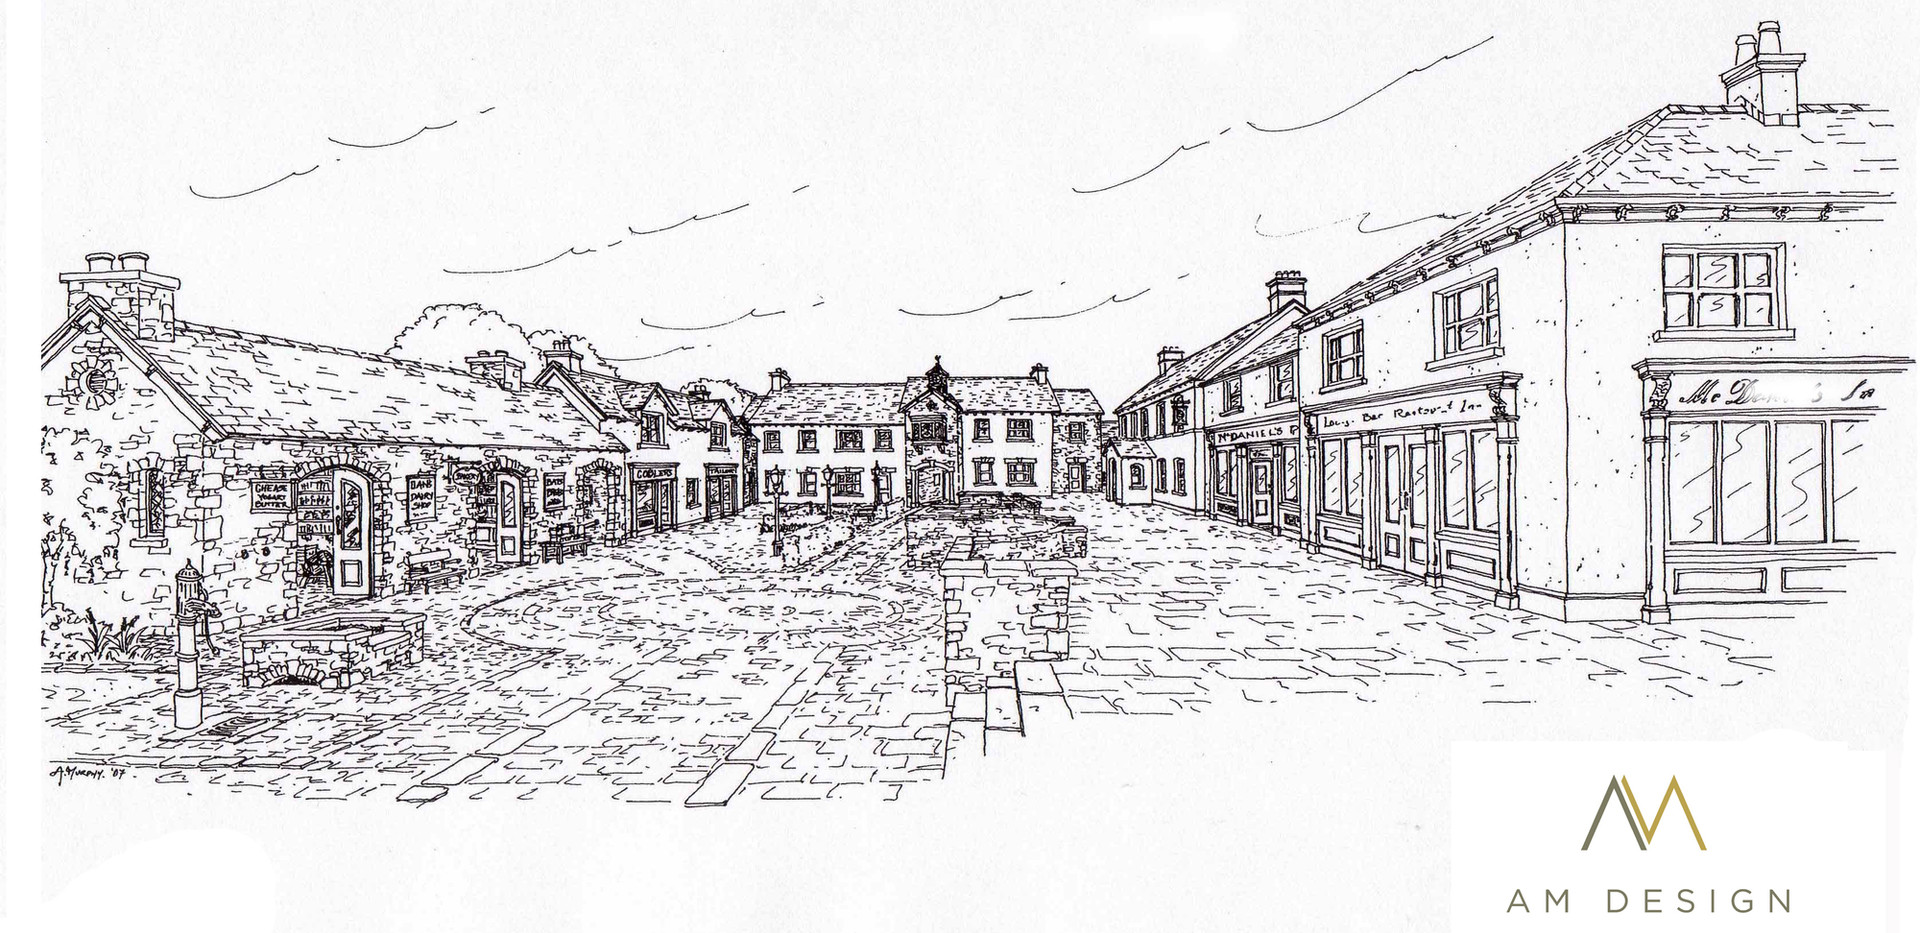 AM Design, Design for Heritage residential and mixed use tourism development, County Wicklow